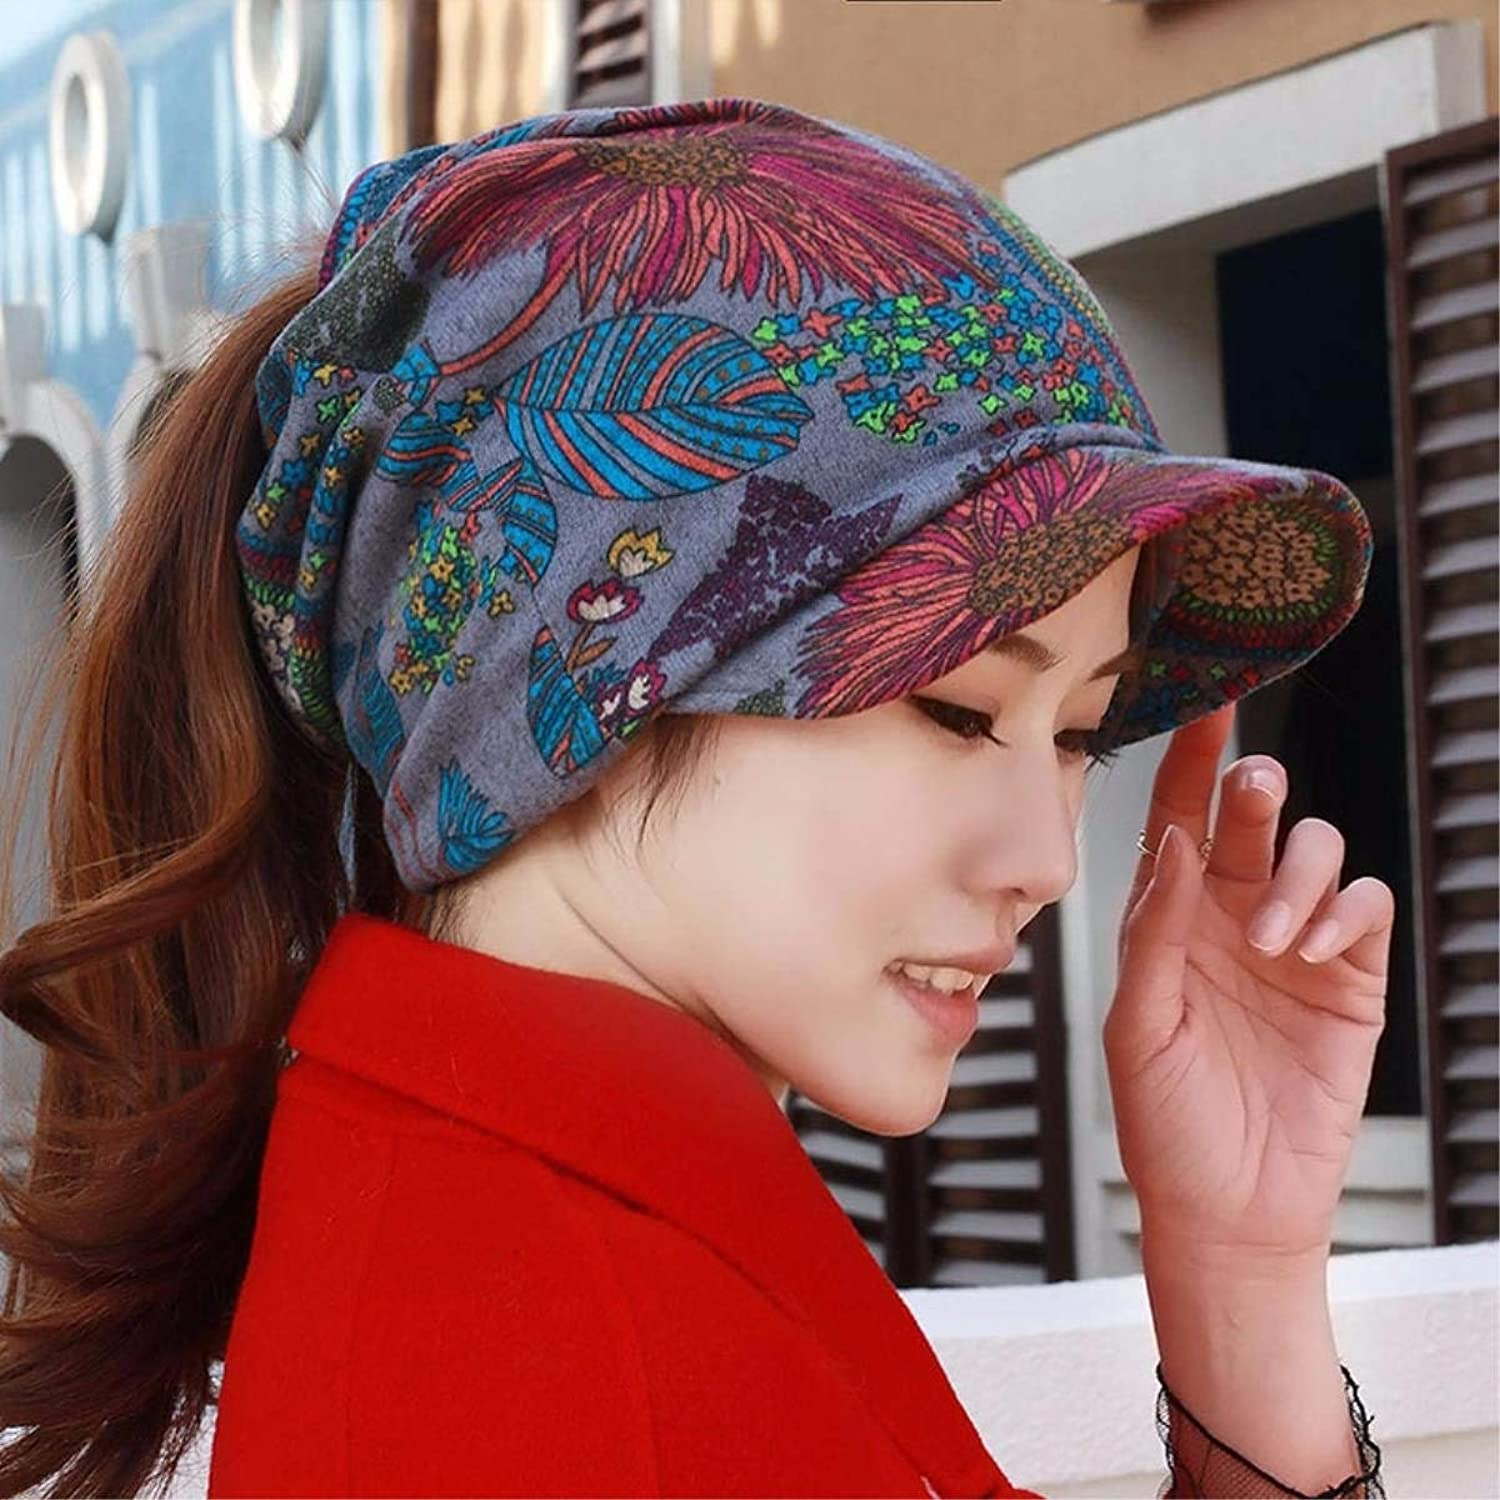 Beach Hat Hat Female Spring National Wind Cap Crushed Flower-Horse Tail Cap Peaked Cap Cycling Basin Cap Storehouse of Head Cap Ear Cap Summer Sun Hat (color   The blueee)